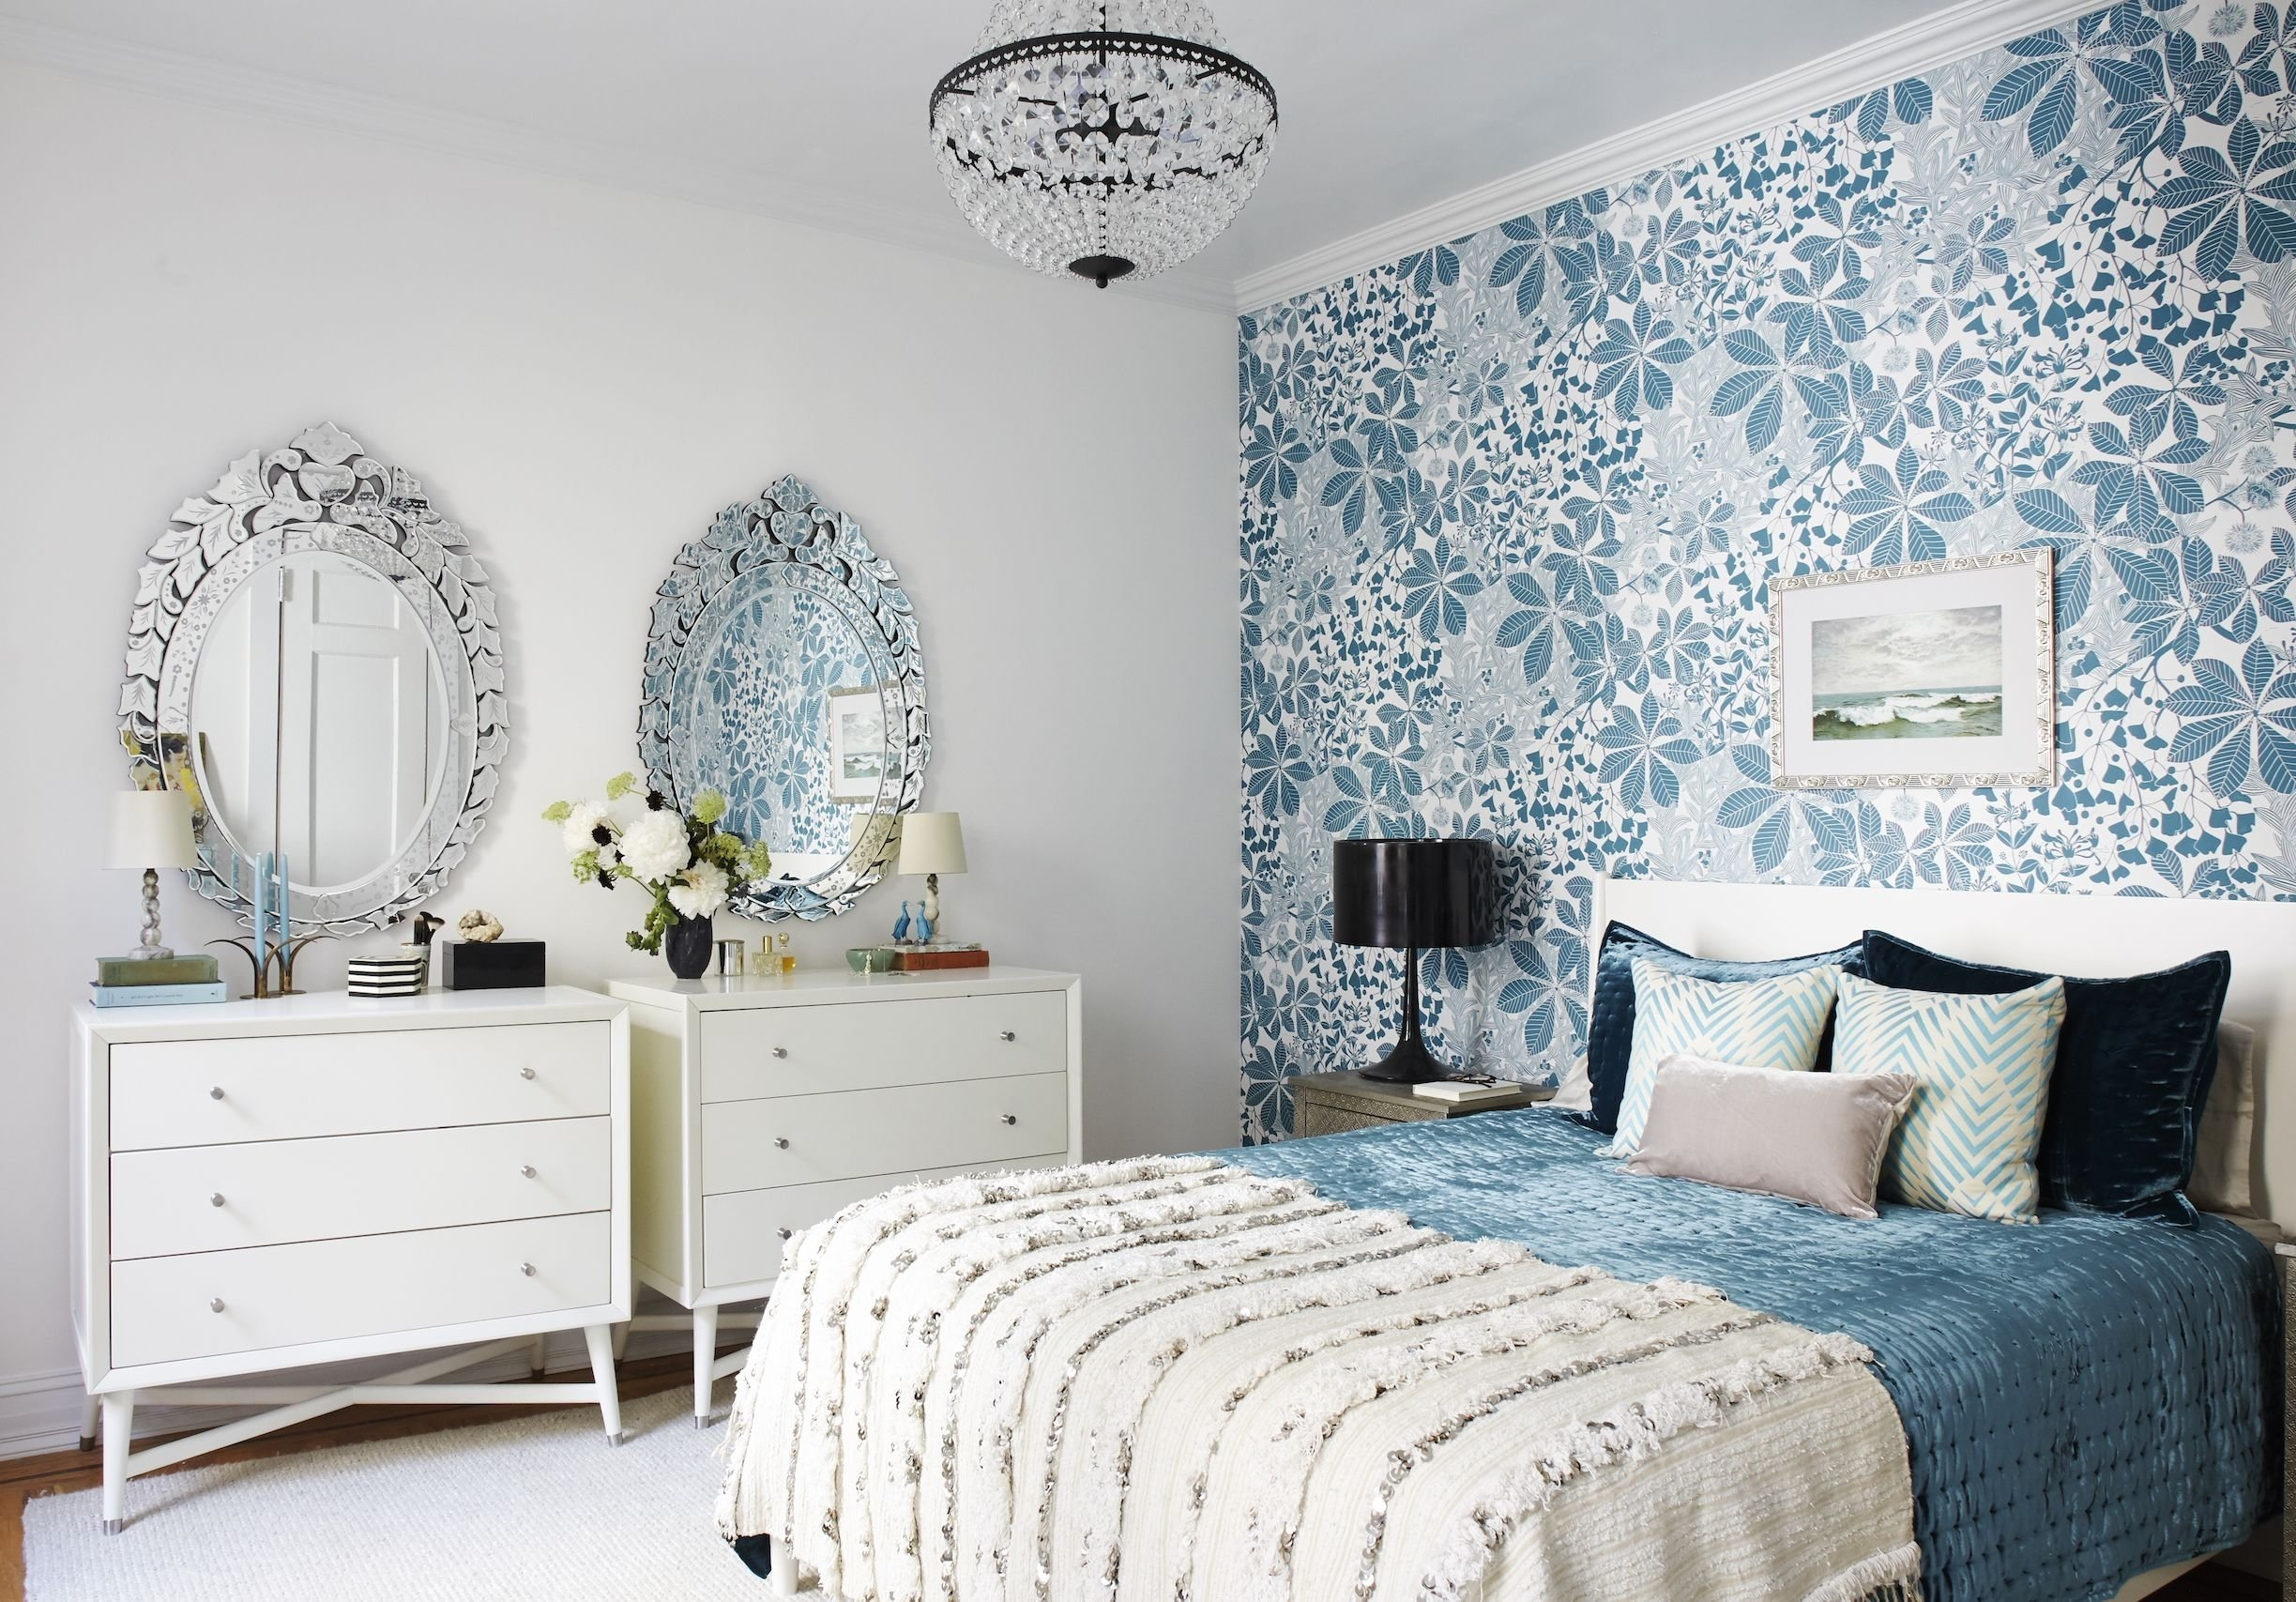 10 Pretty Room Decor Ideas For Small Rooms bedroom setups for small bedrooms bedroom designs for small rooms 2020